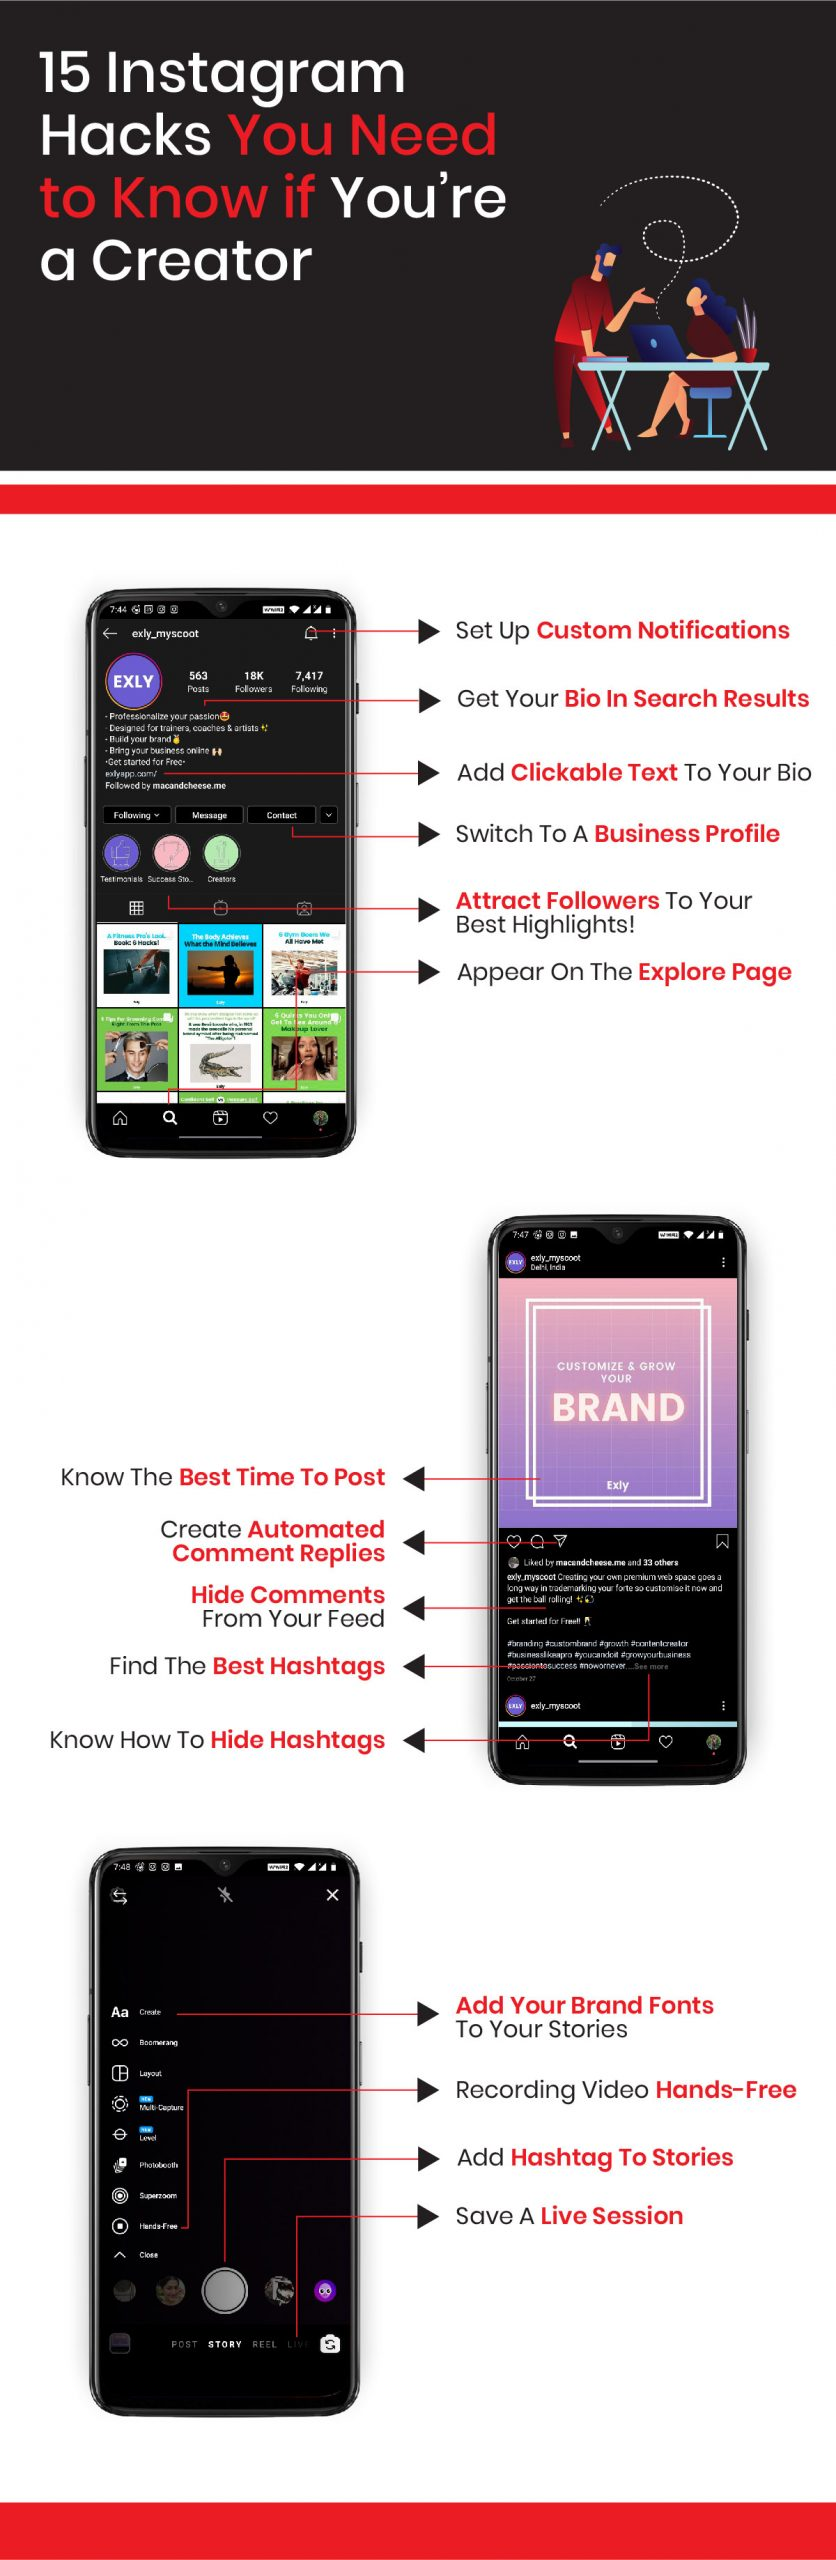 15 Instagram Hacks You Need to know if You're a Creator [Infographic]